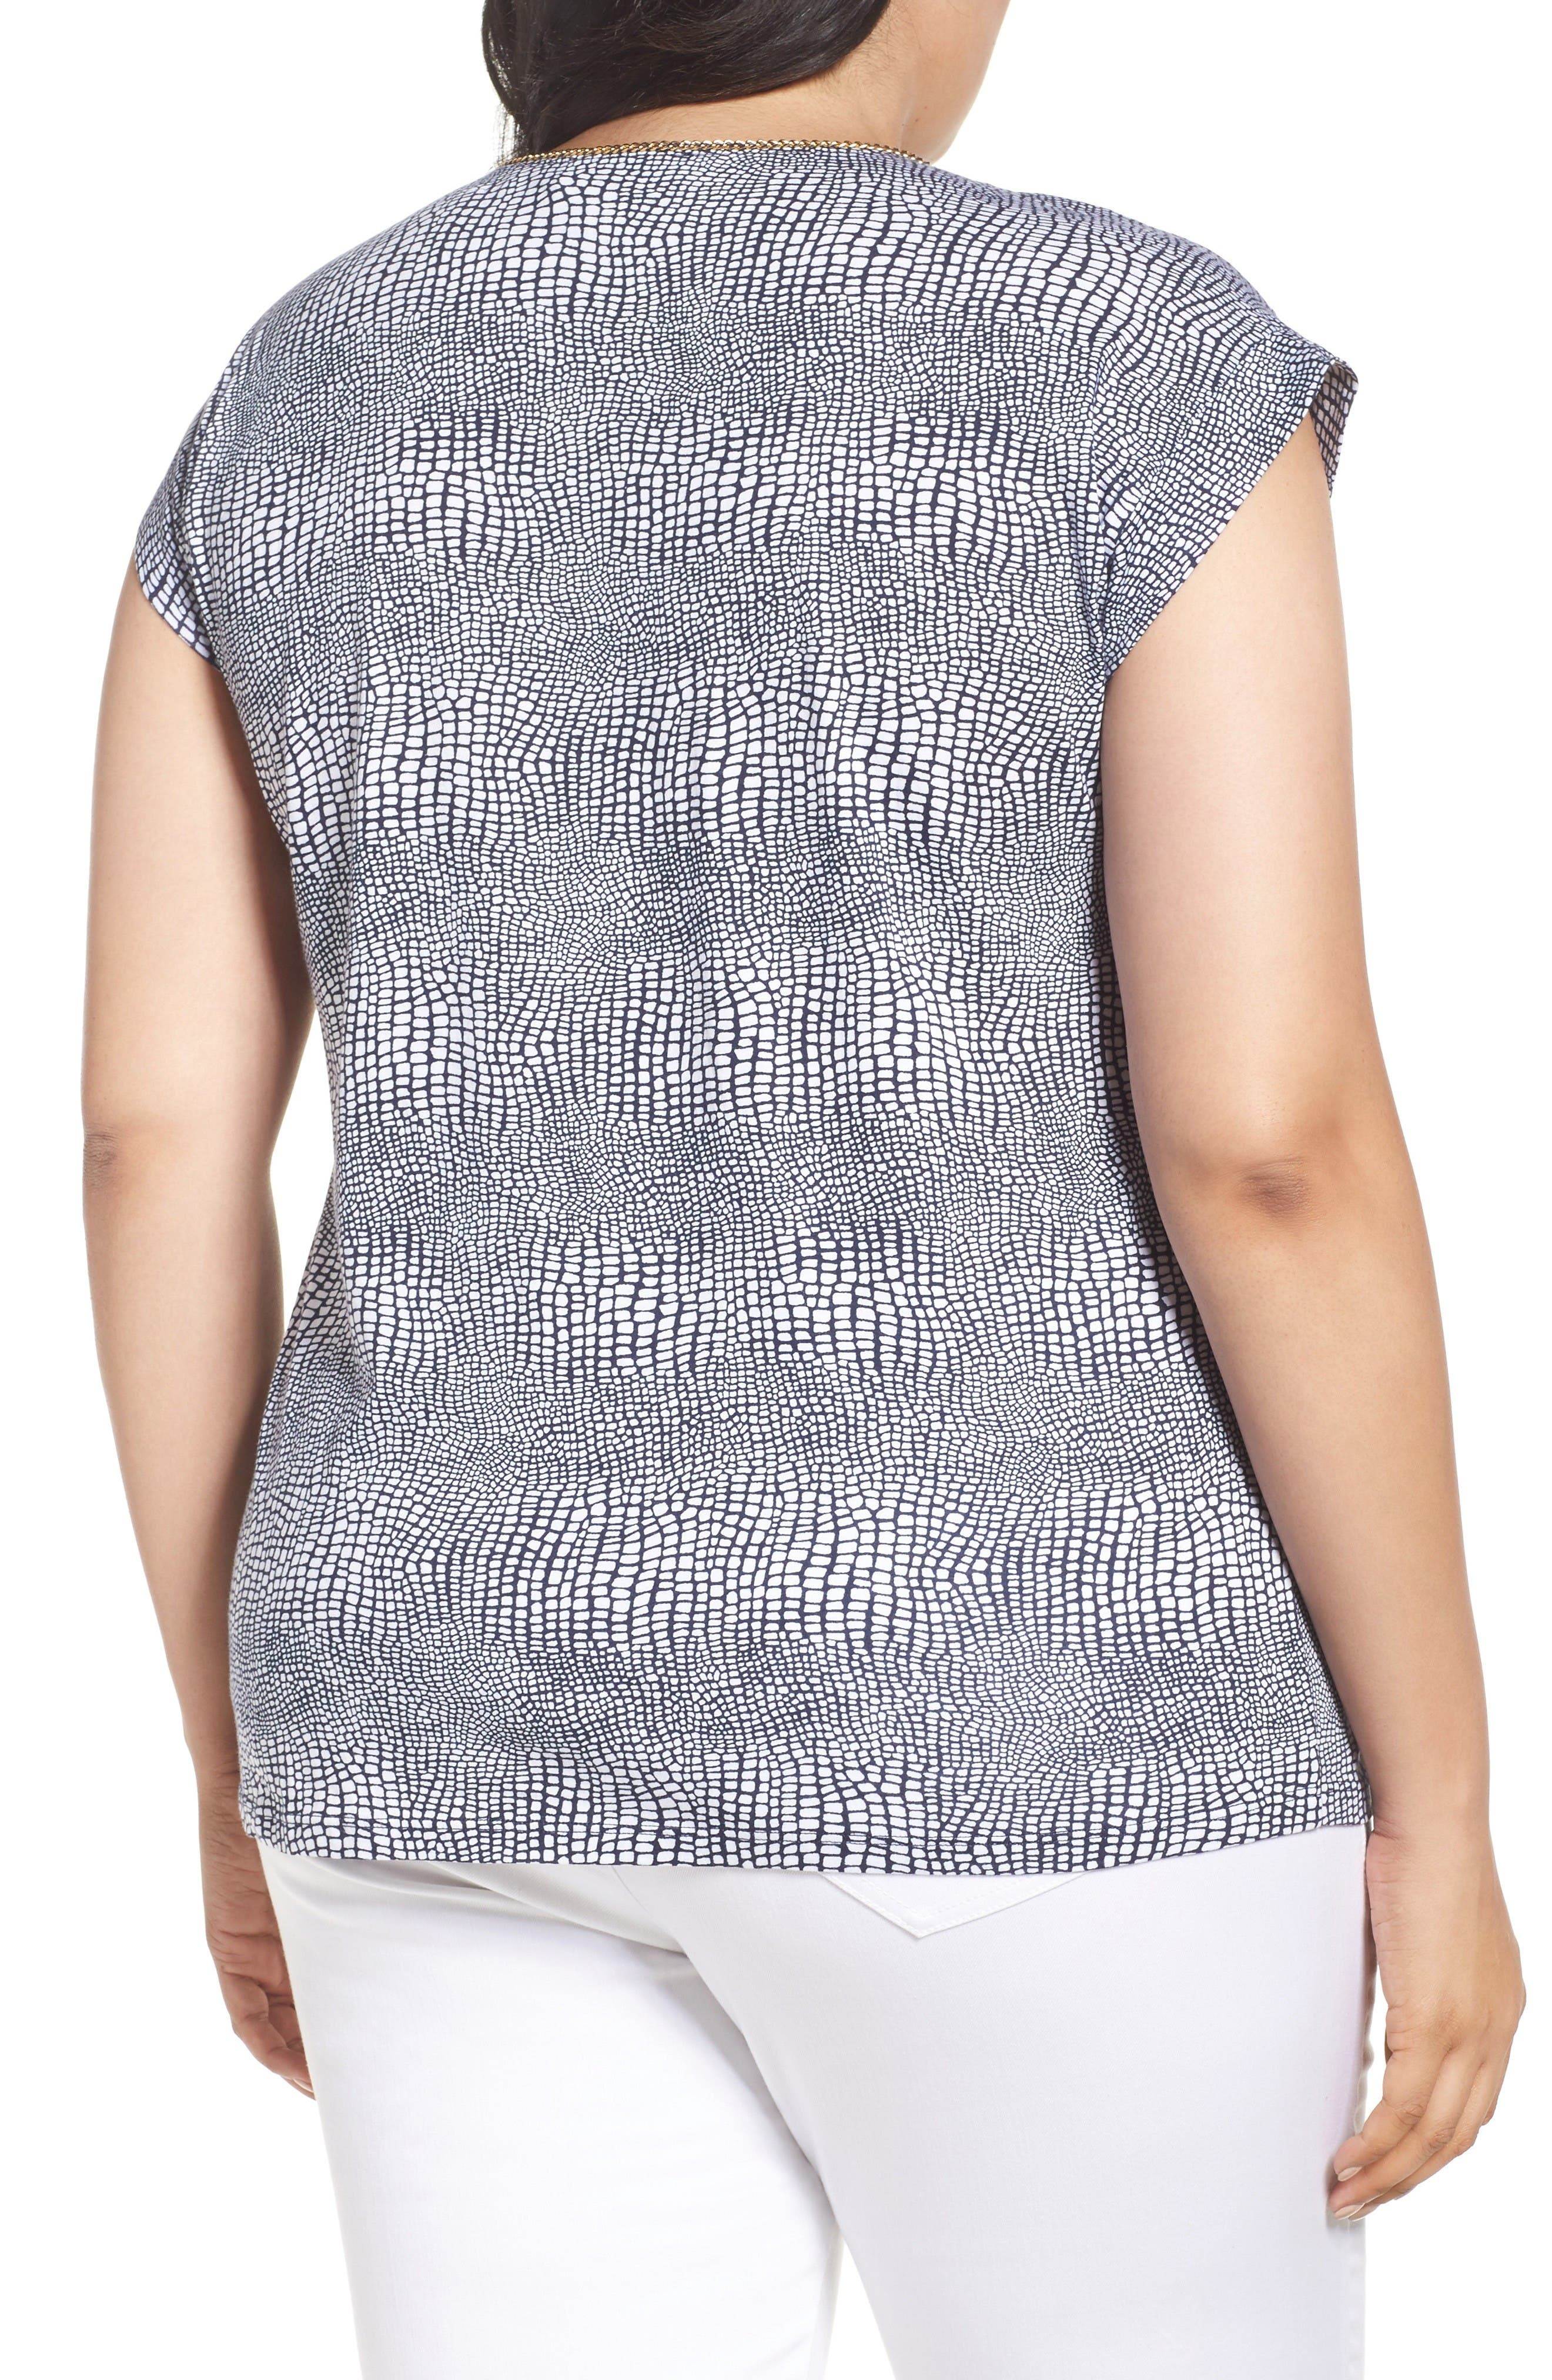 Alternate Image 2  - MICHAEL Michael Kors Zephyr Chain Neck Top (Plus Size)